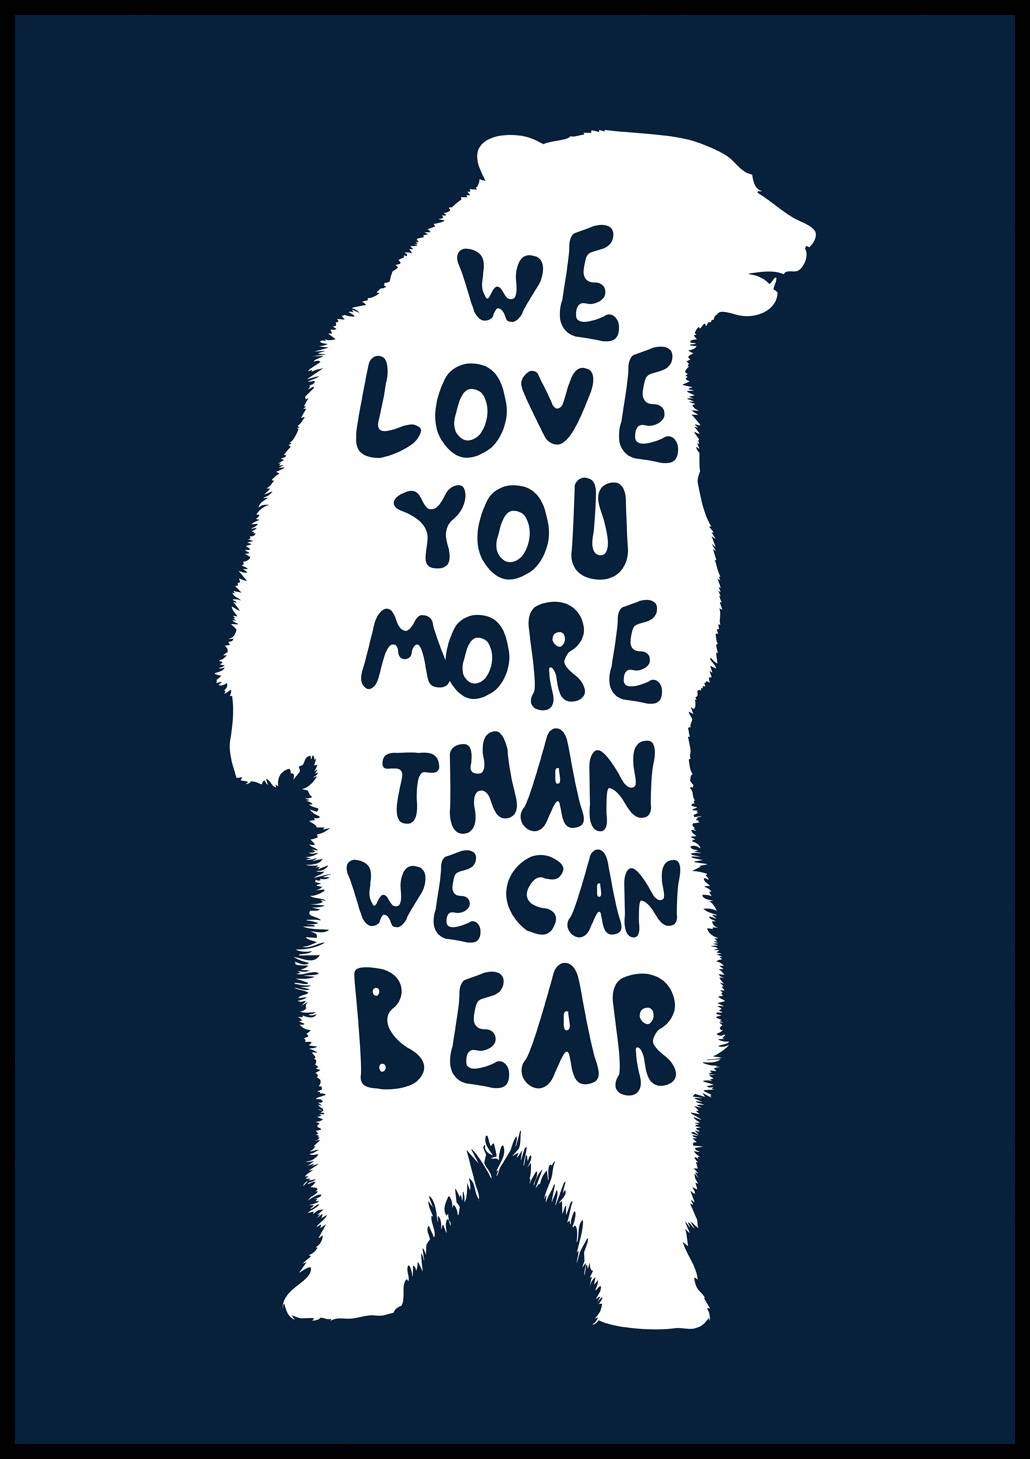 Bildverkstad We love you more than we can bear - 30x40 cm